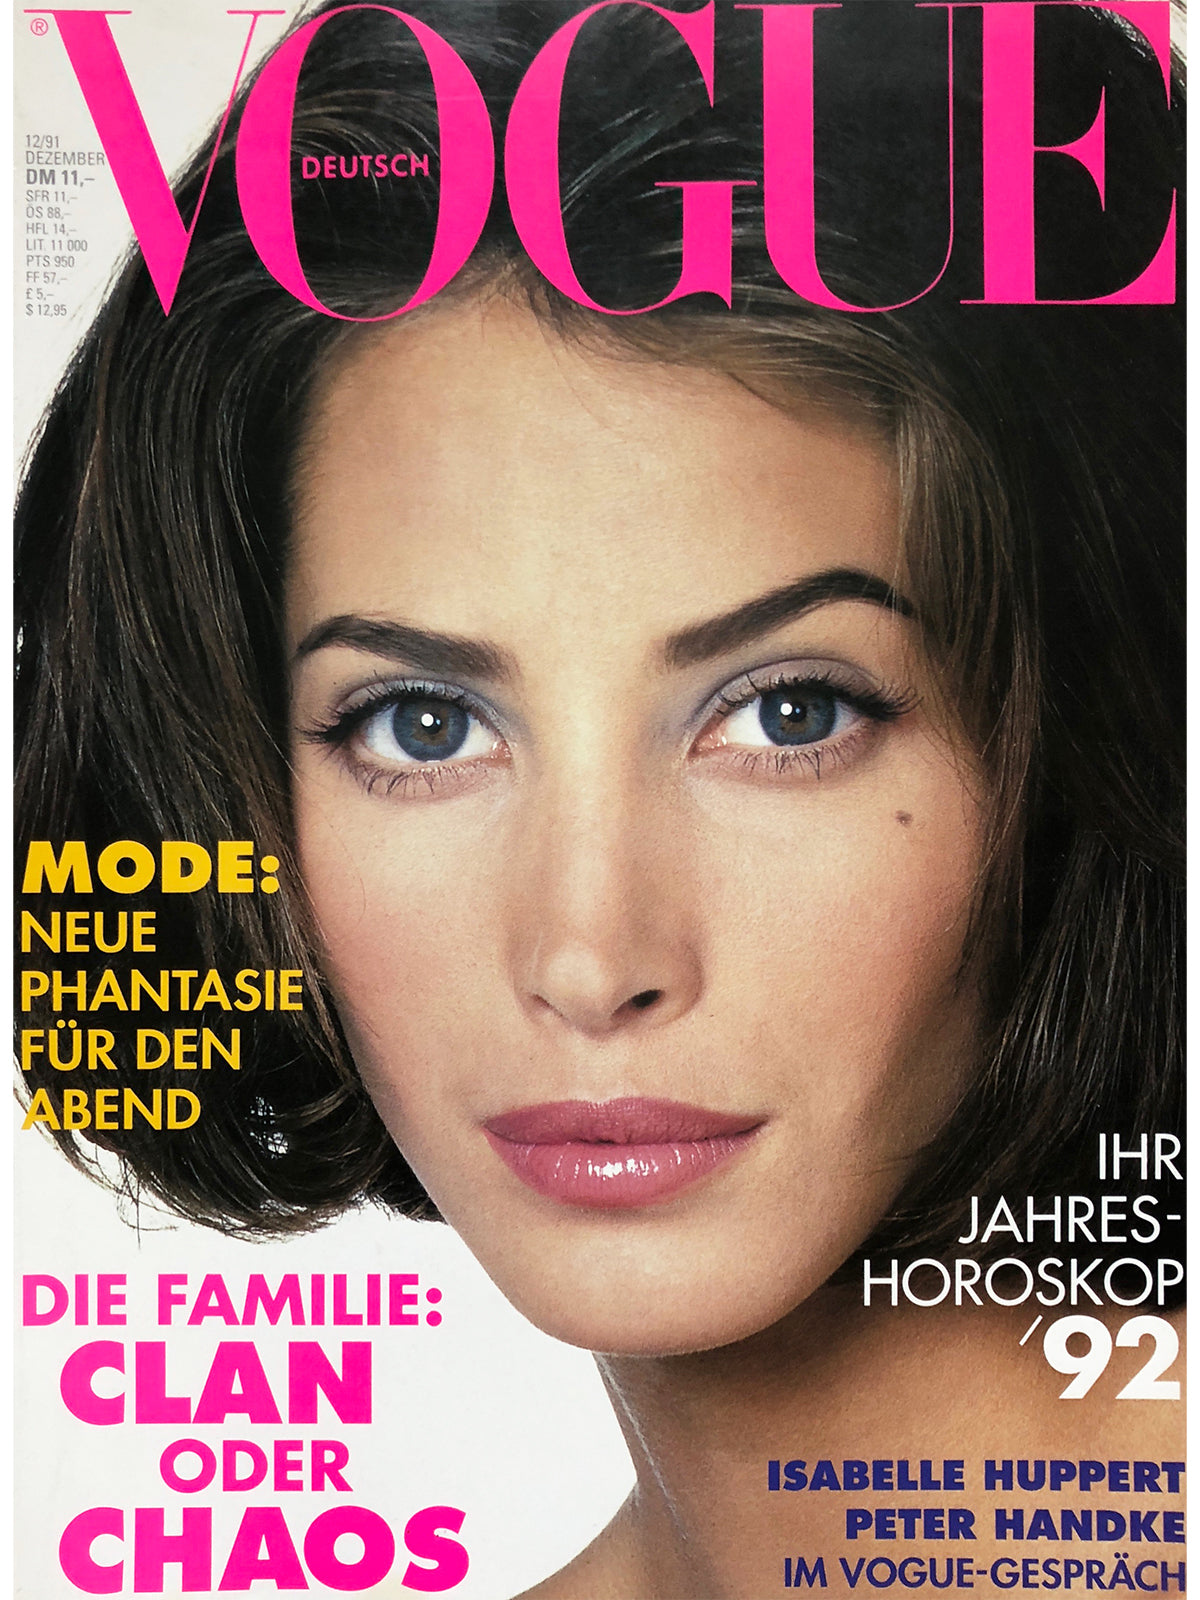 Archived - VOGUE Germany December 1991